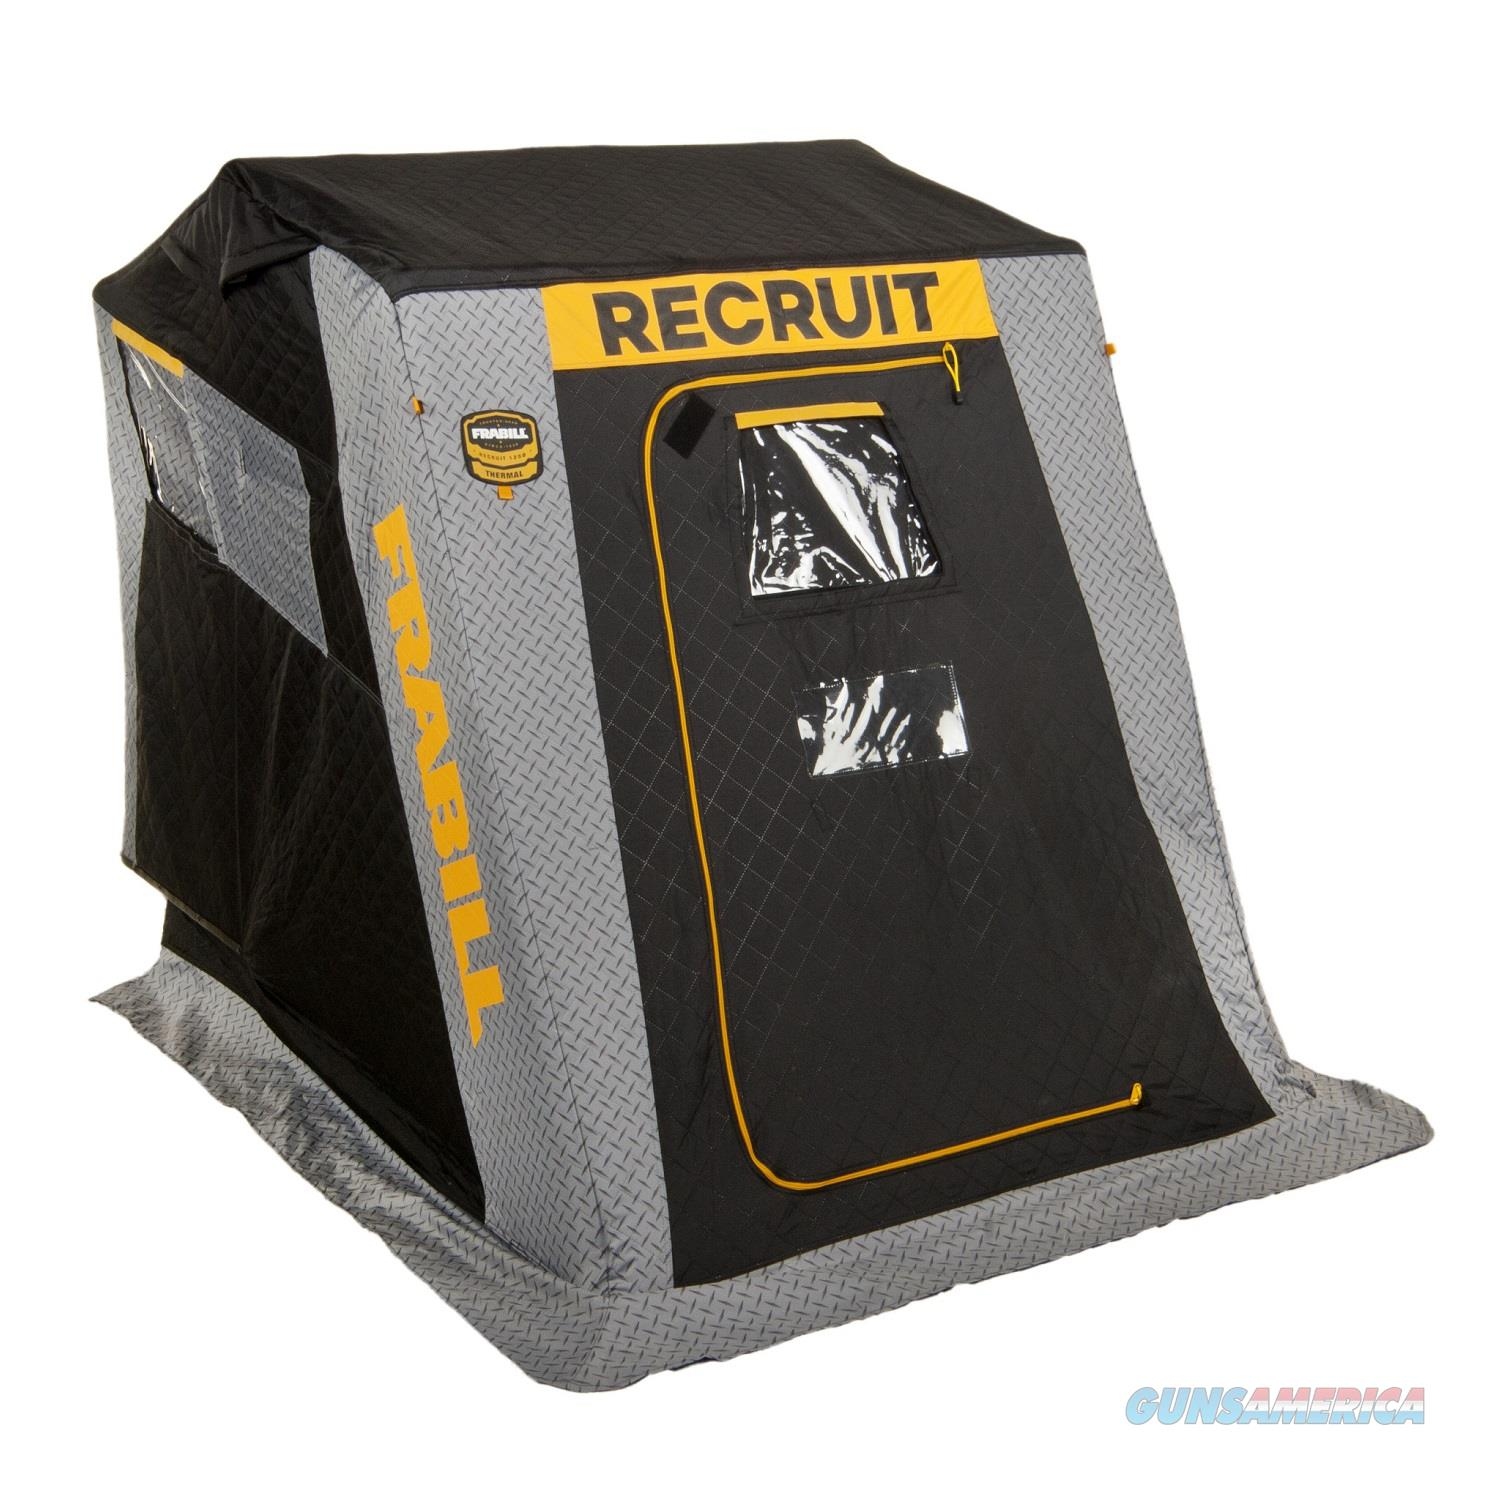 Frabill Recruit 1250 Insulated Flip-Over Shelter Boat Seat 640200  Non-Guns > Fishing/Spearfishing